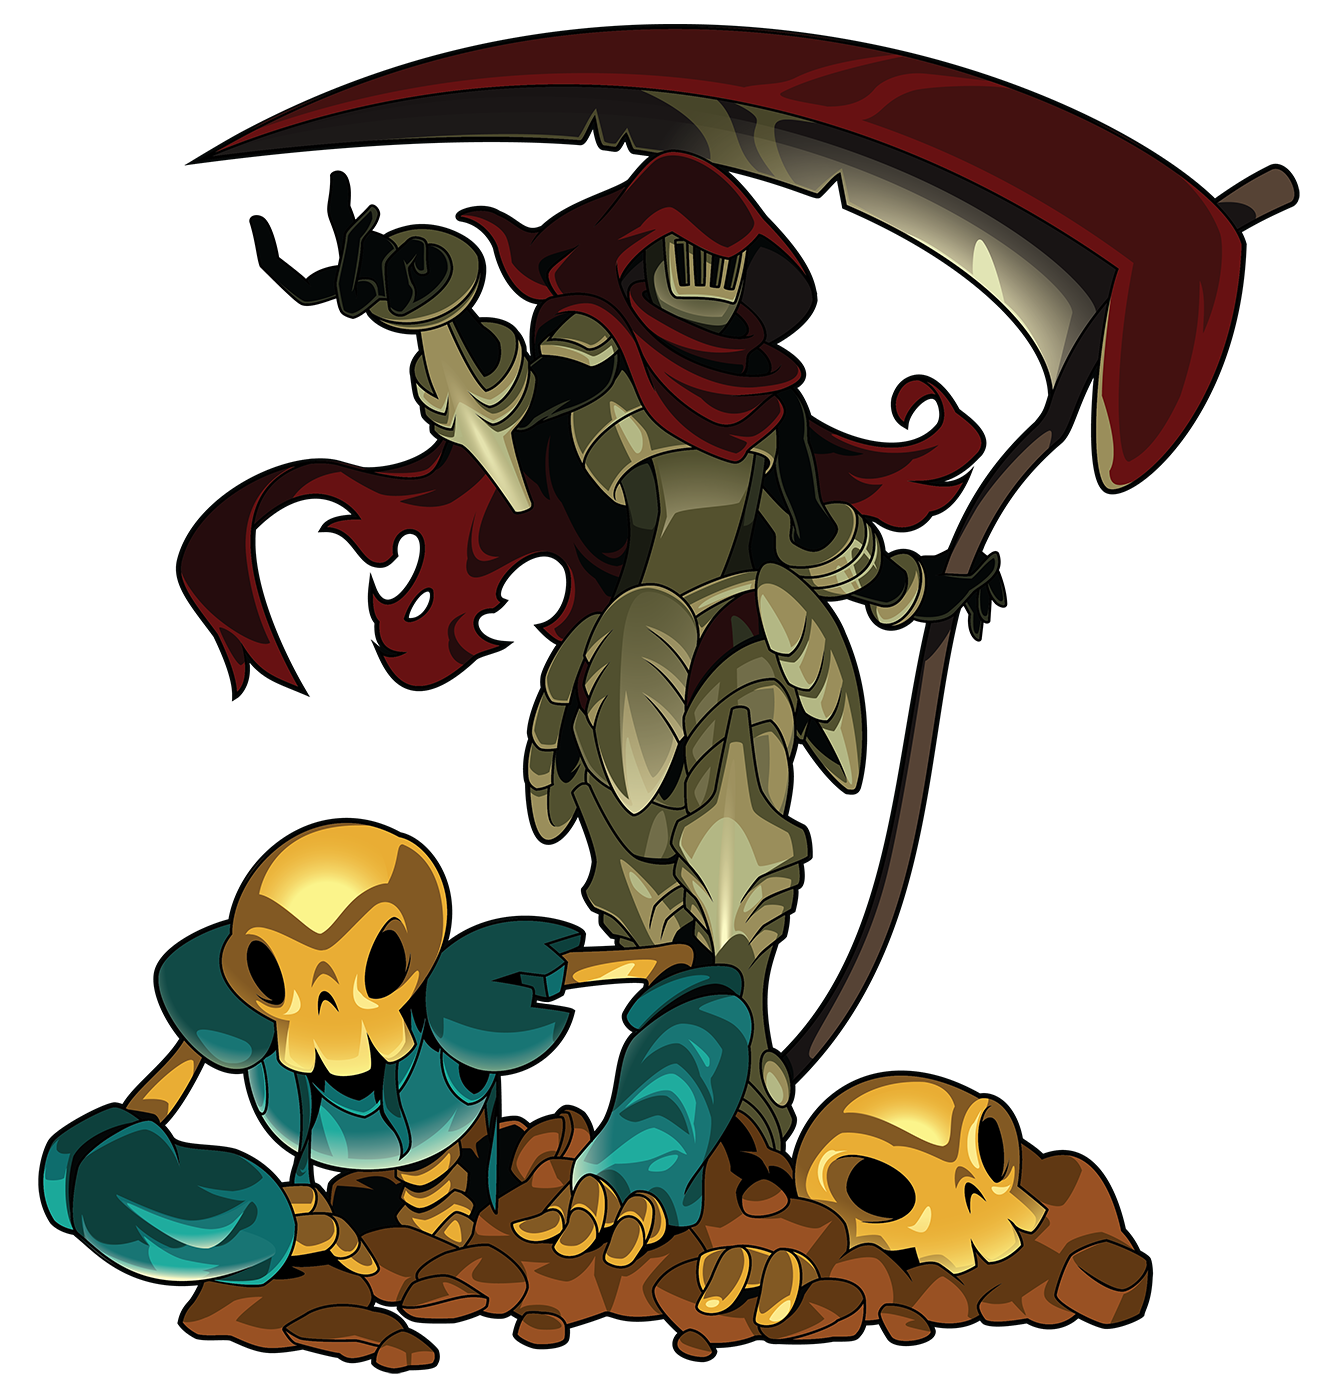 Specter knight vsdebating wiki. Square clipart shovel